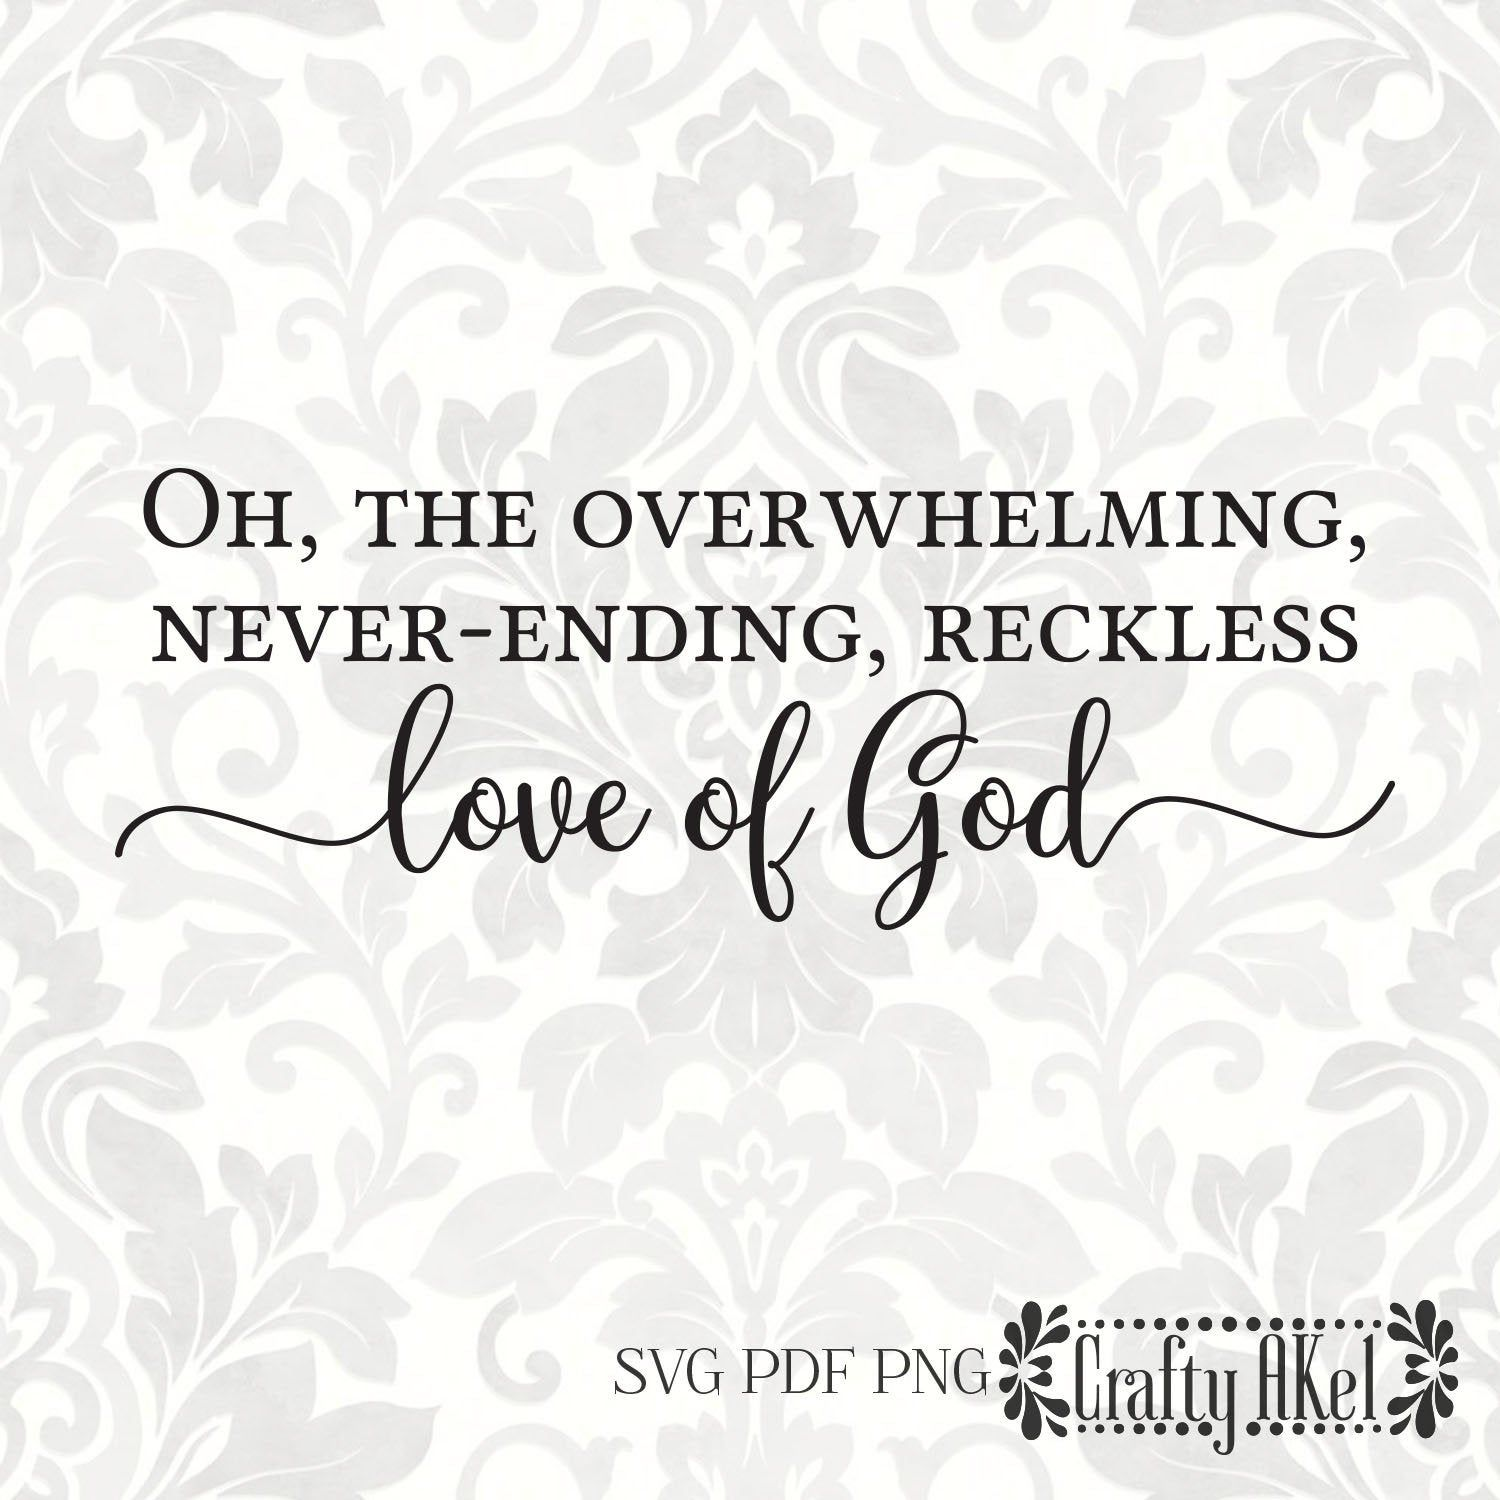 Download Oh, the overwhelming, never-ending, reckless love of God ...